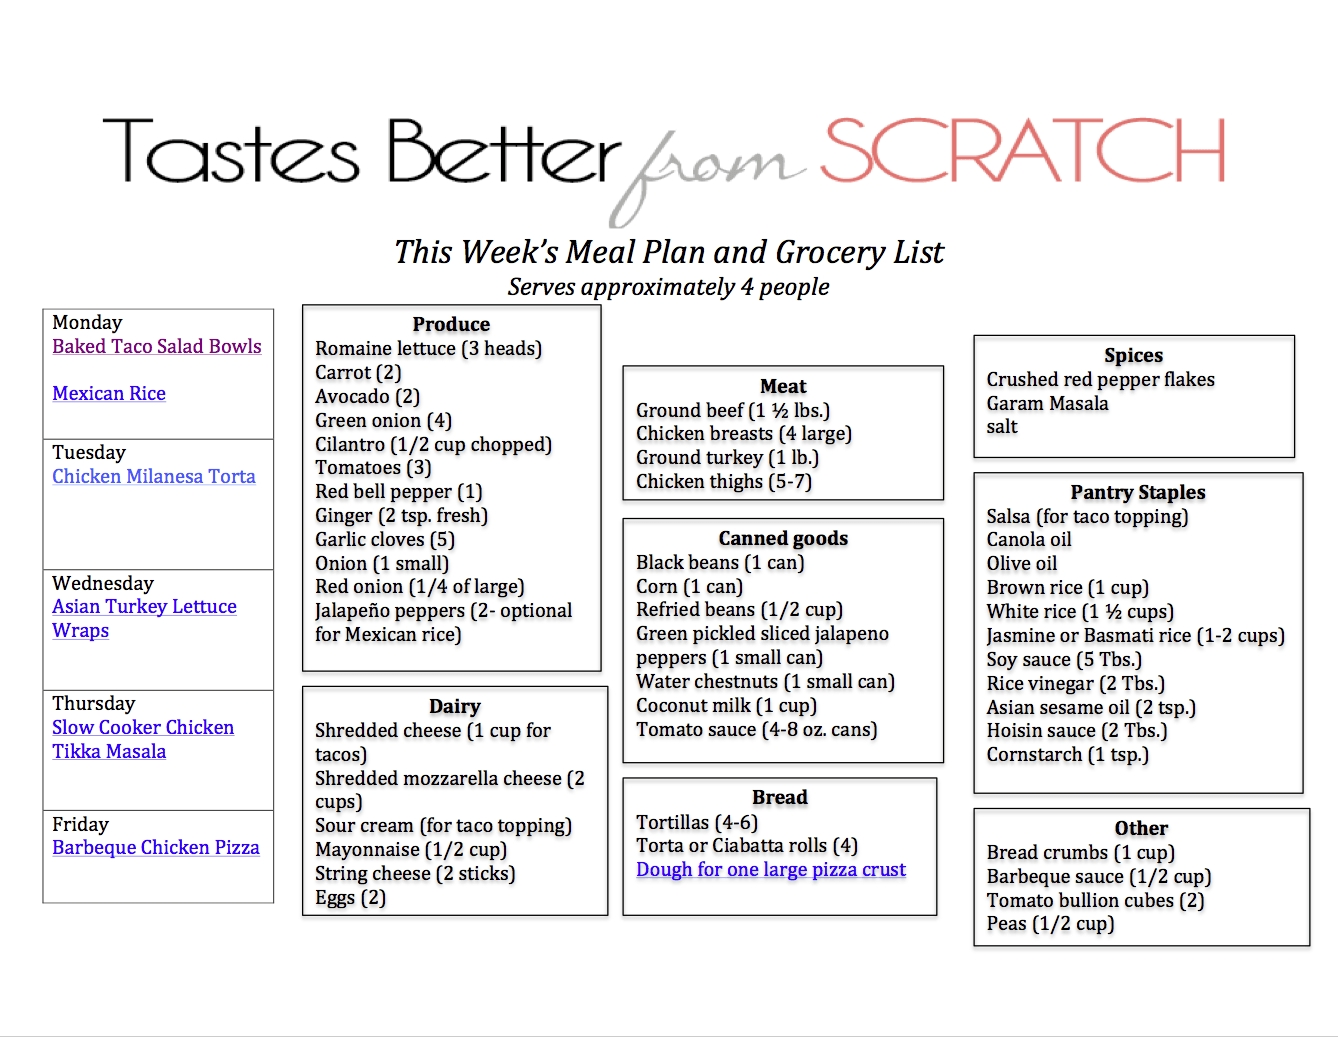 10 Trendy List Of Easy Dinner Ideas 5 easy and family friendly meal ideas with a printable shopping list 2020